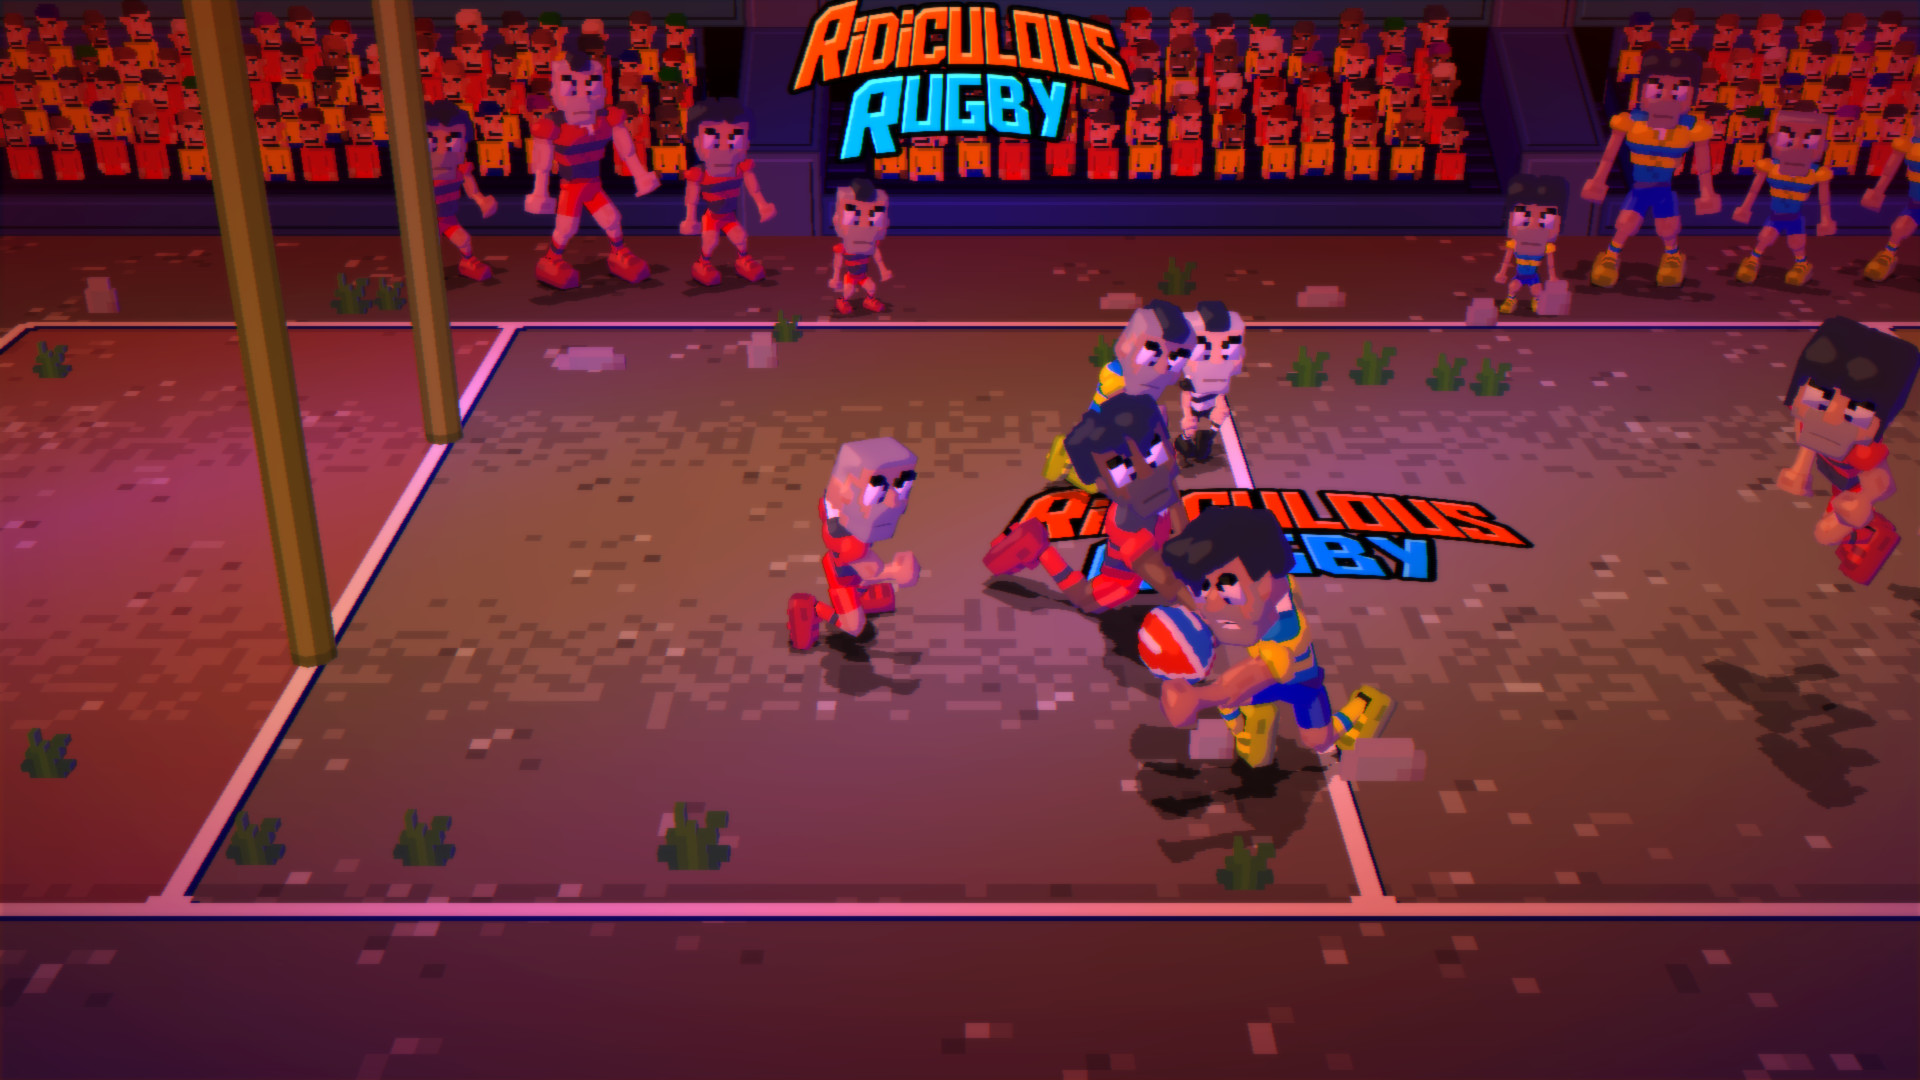 Ridiculous Rugby 中文版